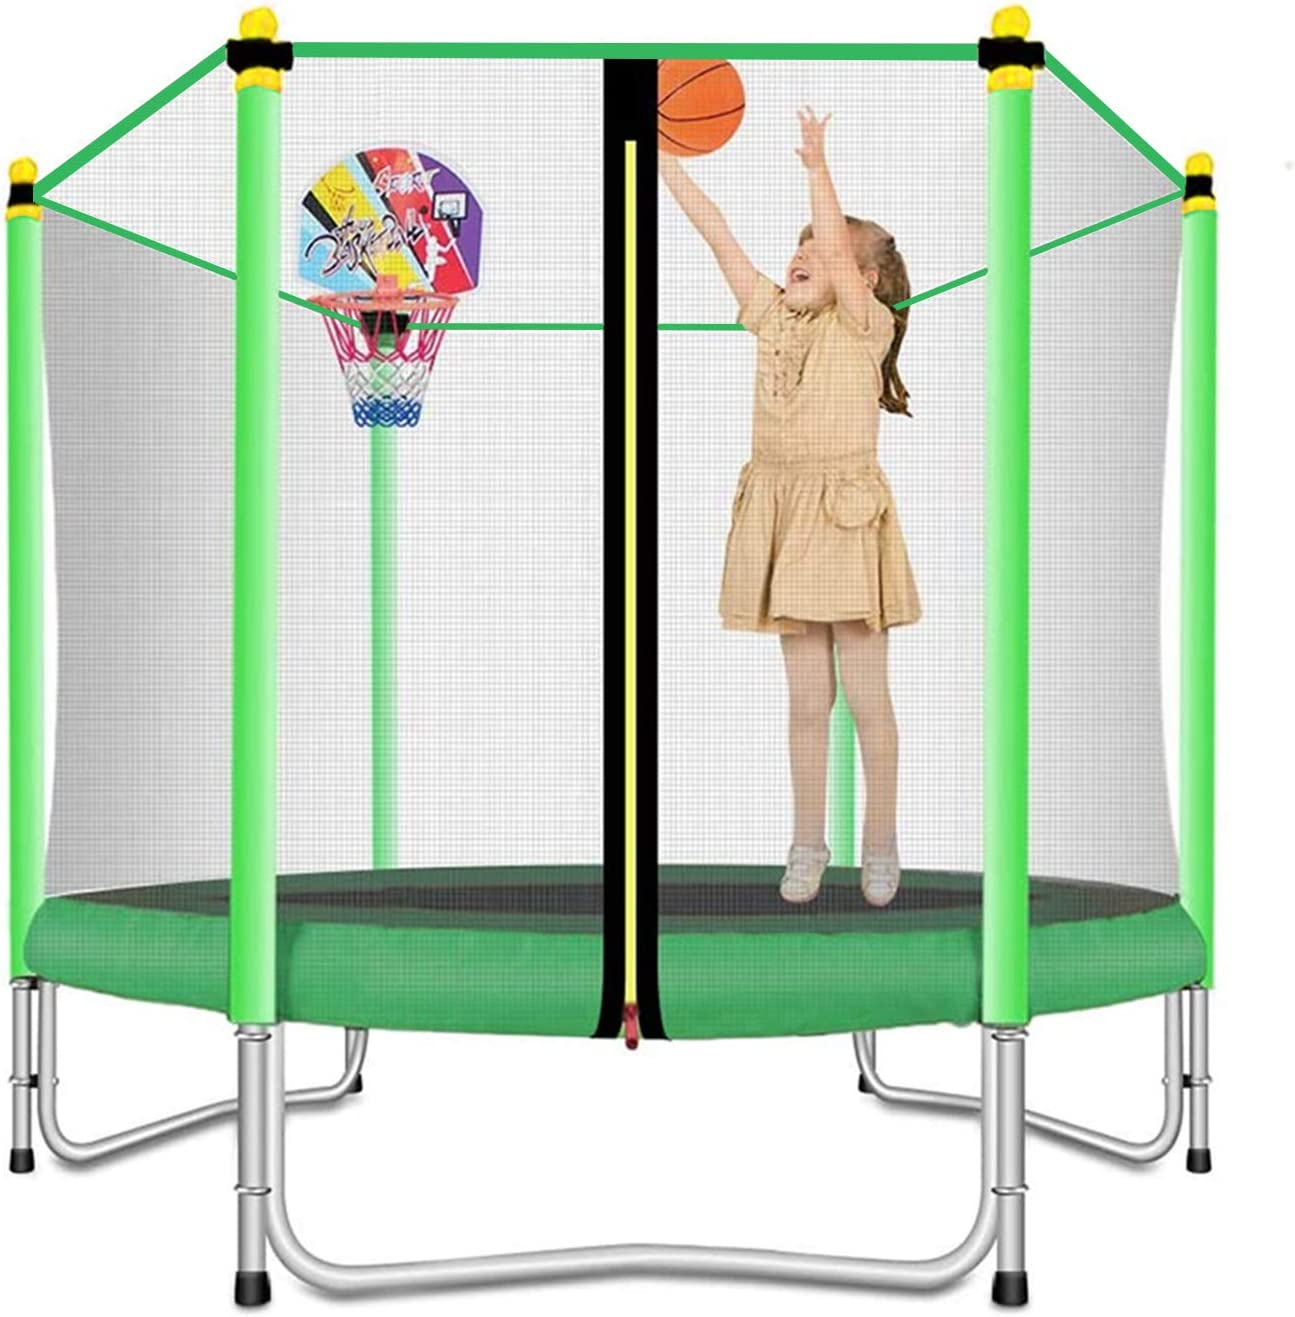 Lovely Snail 5ft Trampoline For Kids With Safety Enclosure Net Basketball Hoop Mini Trampoline For Outdoor Indoor Family Backyard School Entertainment Age 3 10 Sports Outdoors